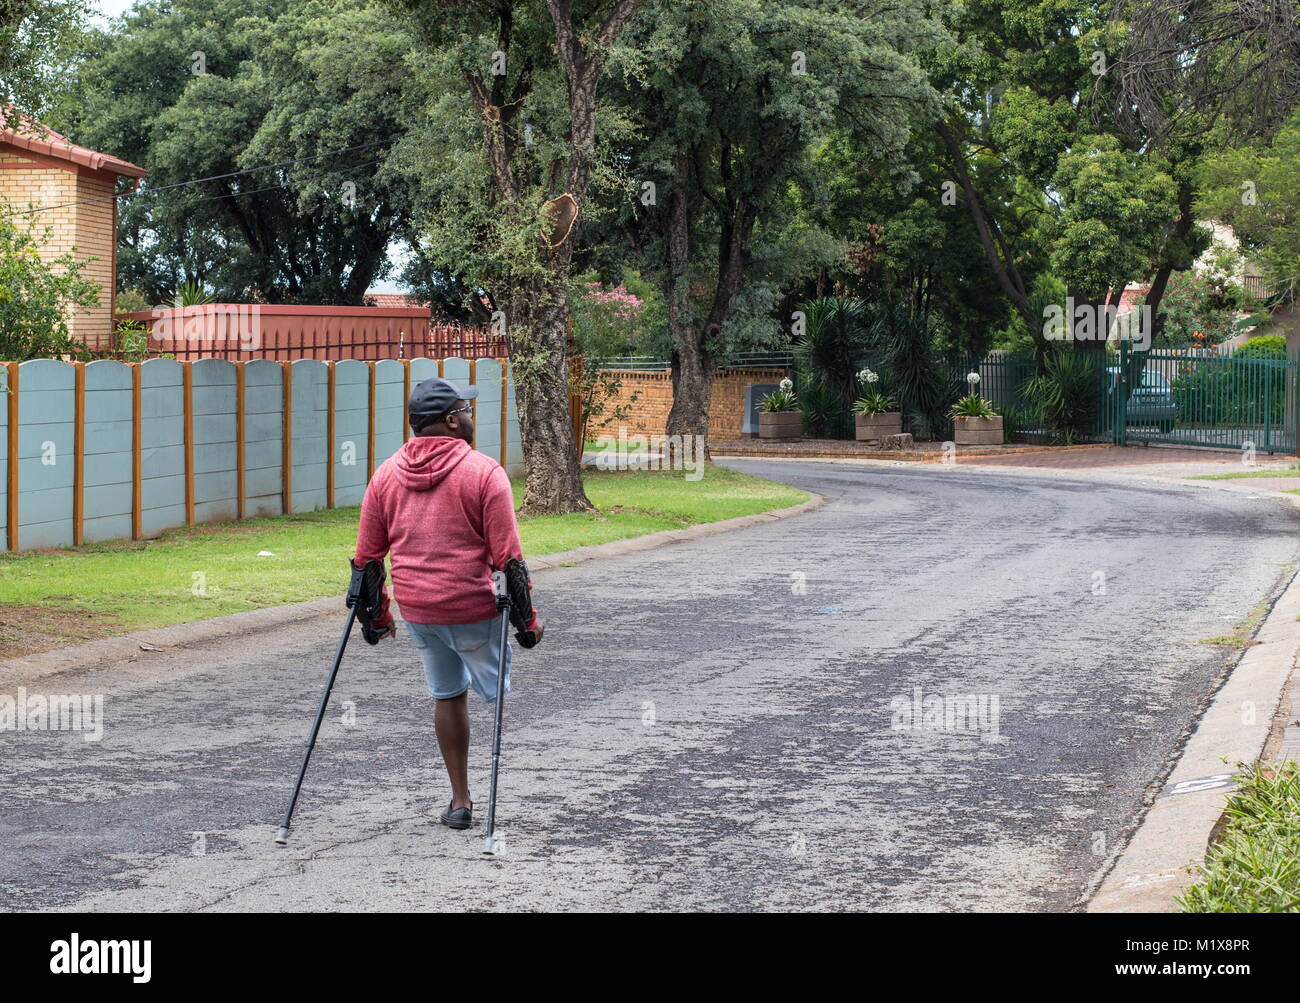 Johannesburg, South Africa - unidentified physically disabled man on crutches struggle through the streets of the - Stock Image